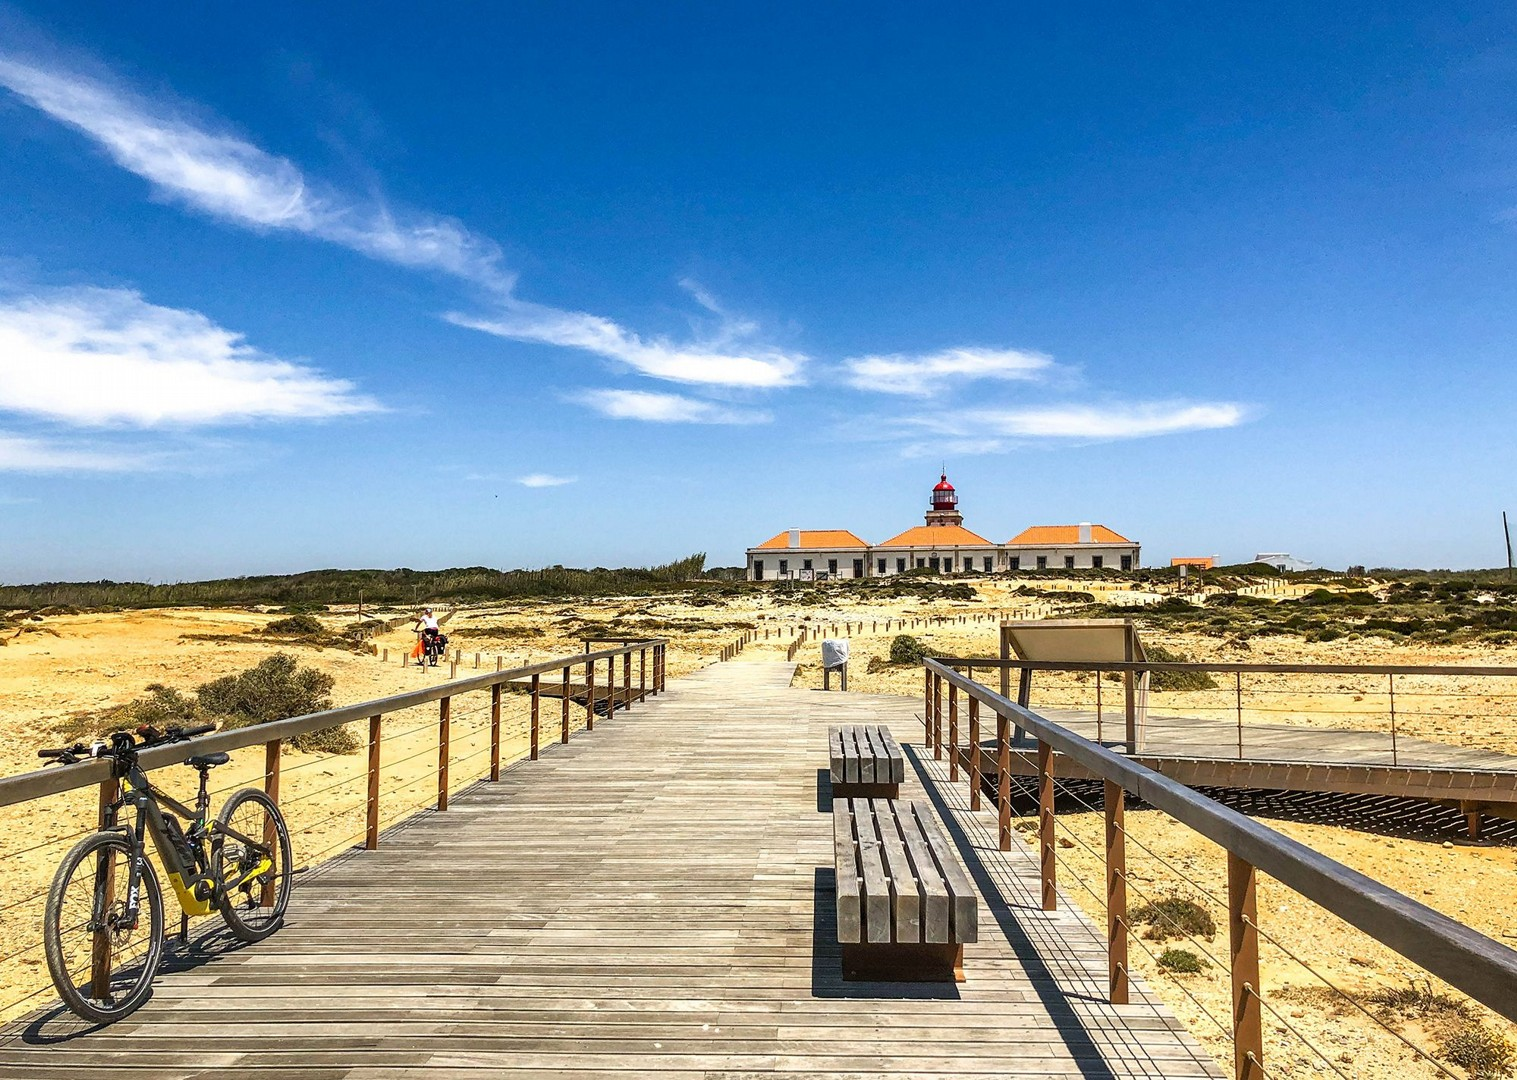 cycling-portugal-leisure-self-guided-holiday-coastal-explorer-bike.jpg - Portugal - Alentejo and Algarve Coastal Explorer - Self-Guided Leisure Cycling Holiday - Leisure Cycling